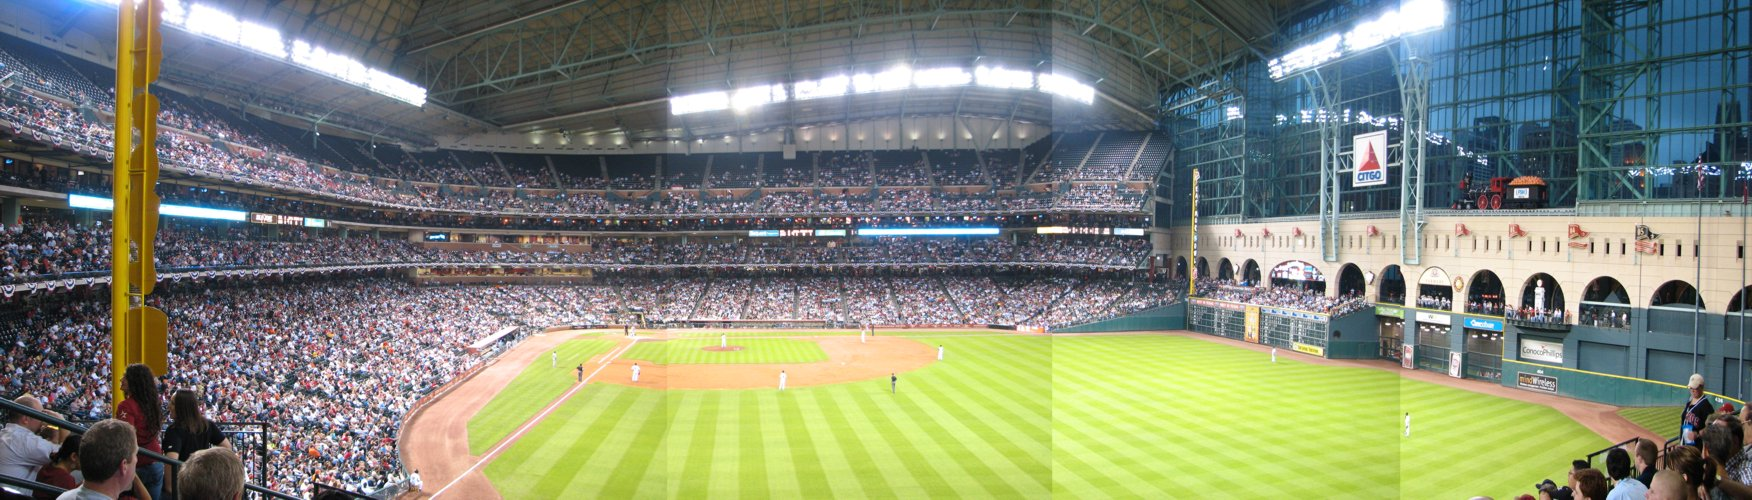 Minute Maid Park Panorama: Closed Roof